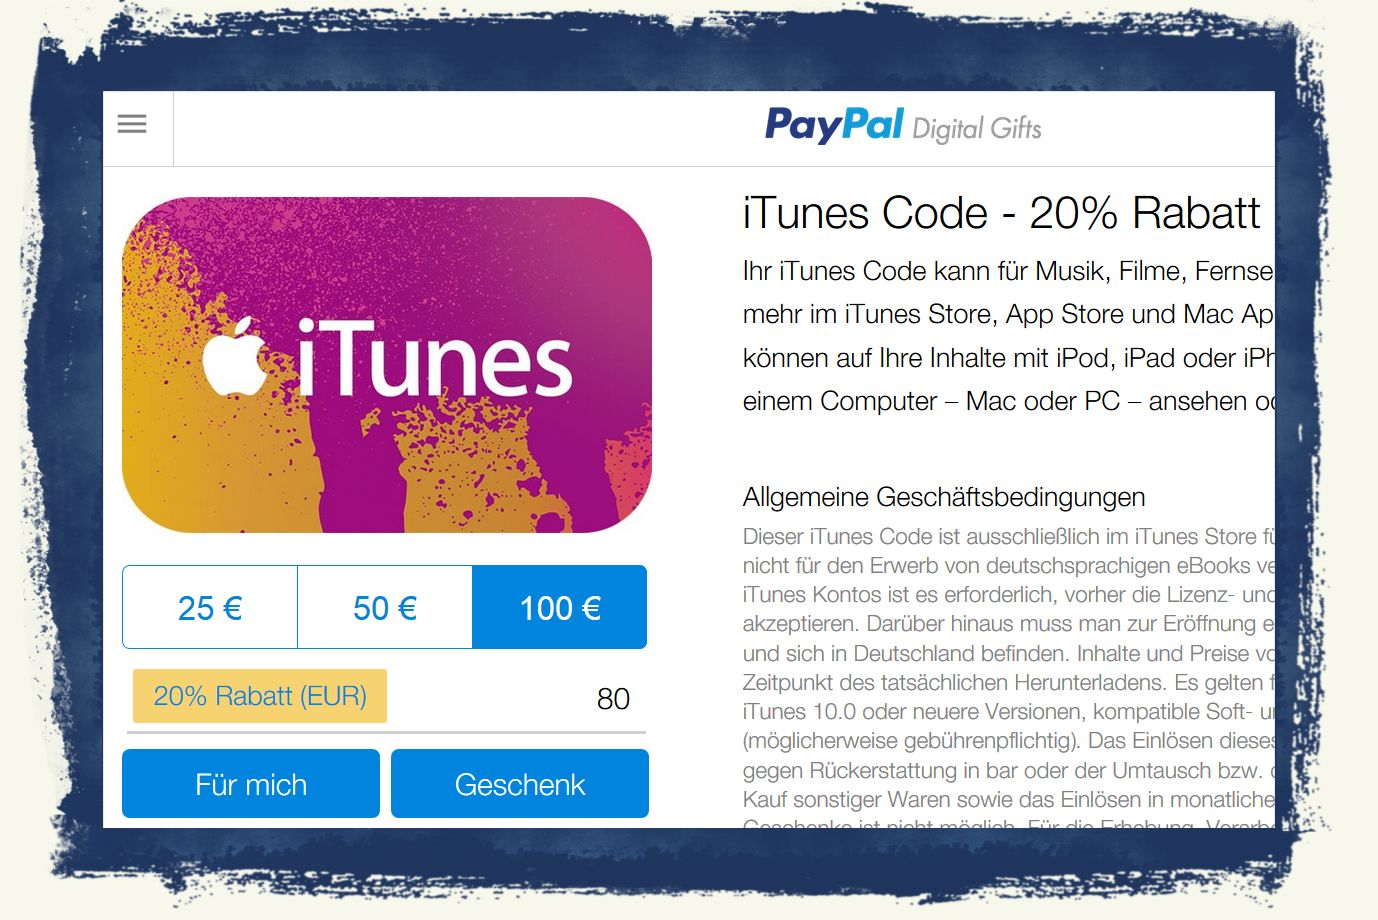 iTunes,Apple,iPhone,iPad,Rabatt,PayPal,20,Prozent 1